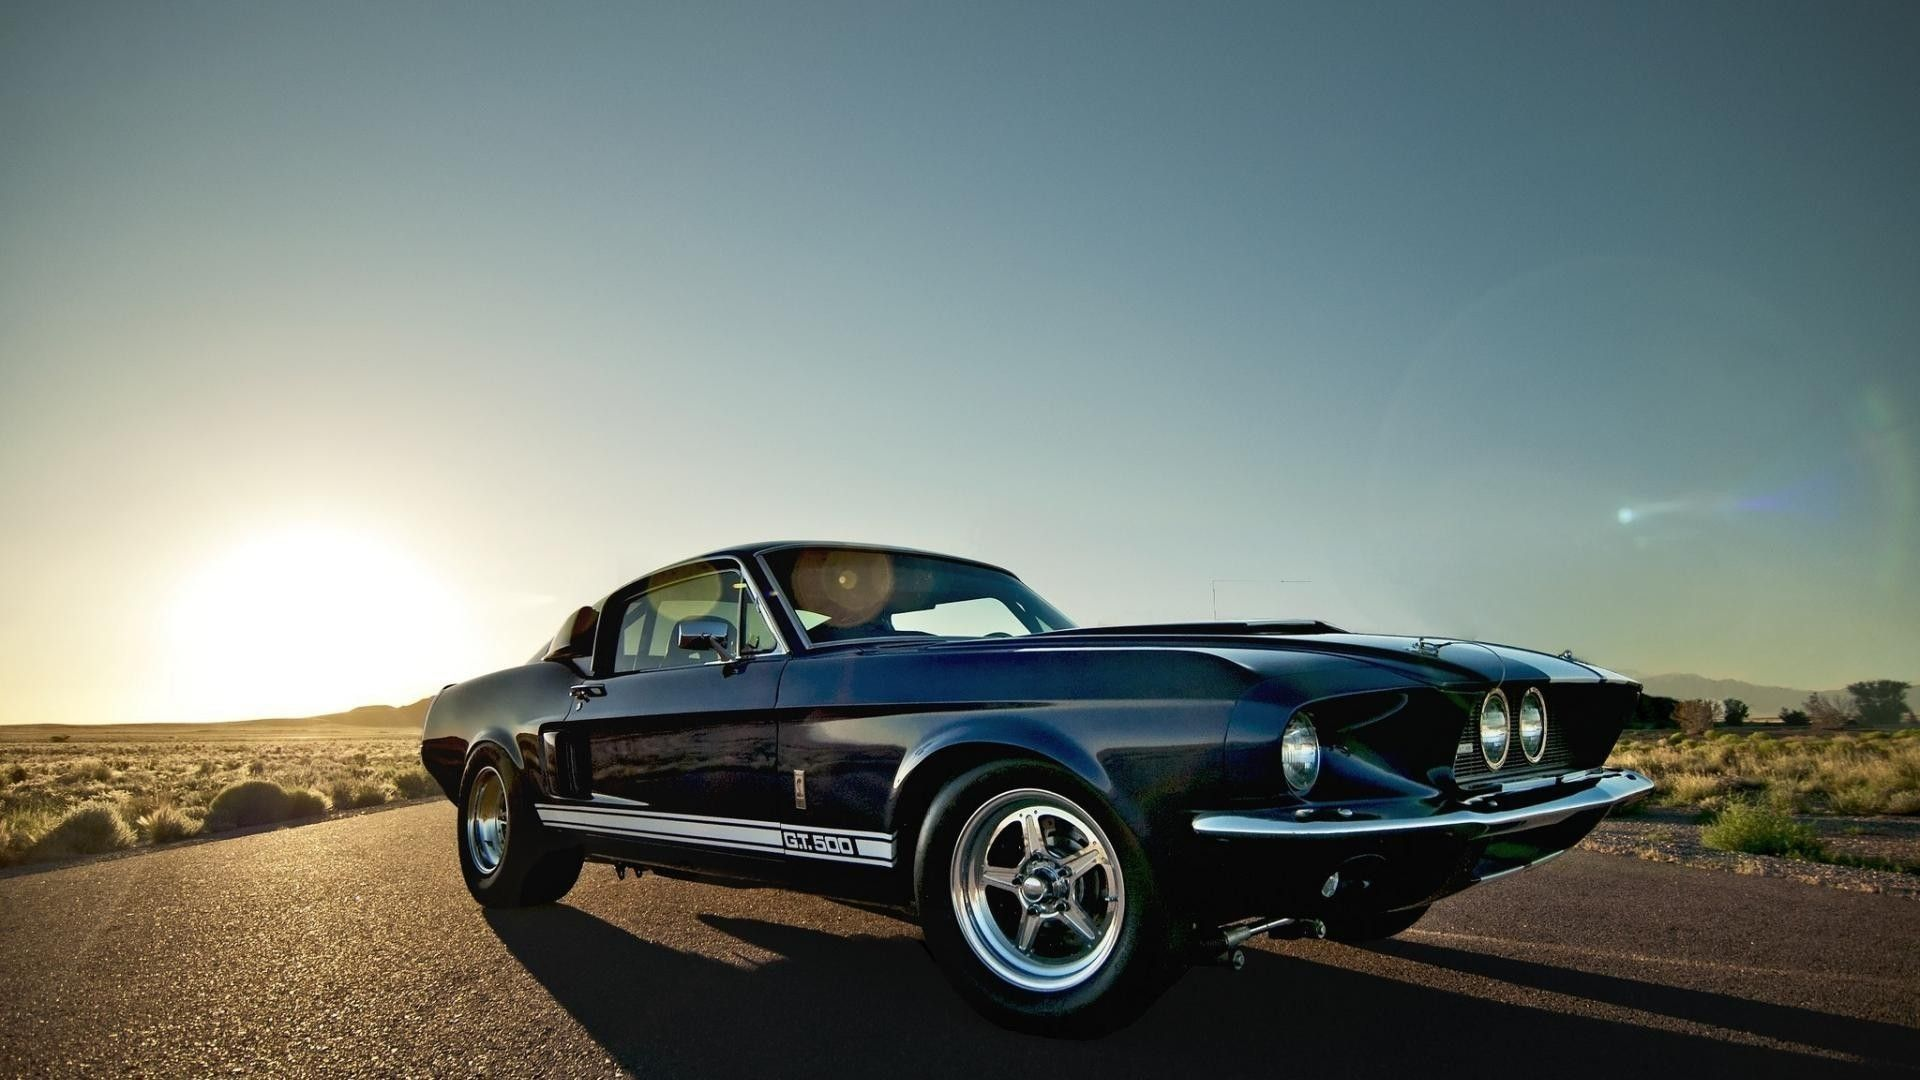 Mustang 1967 Wallpapers Top Free Mustang 1967 Backgrounds Wallpaperaccess